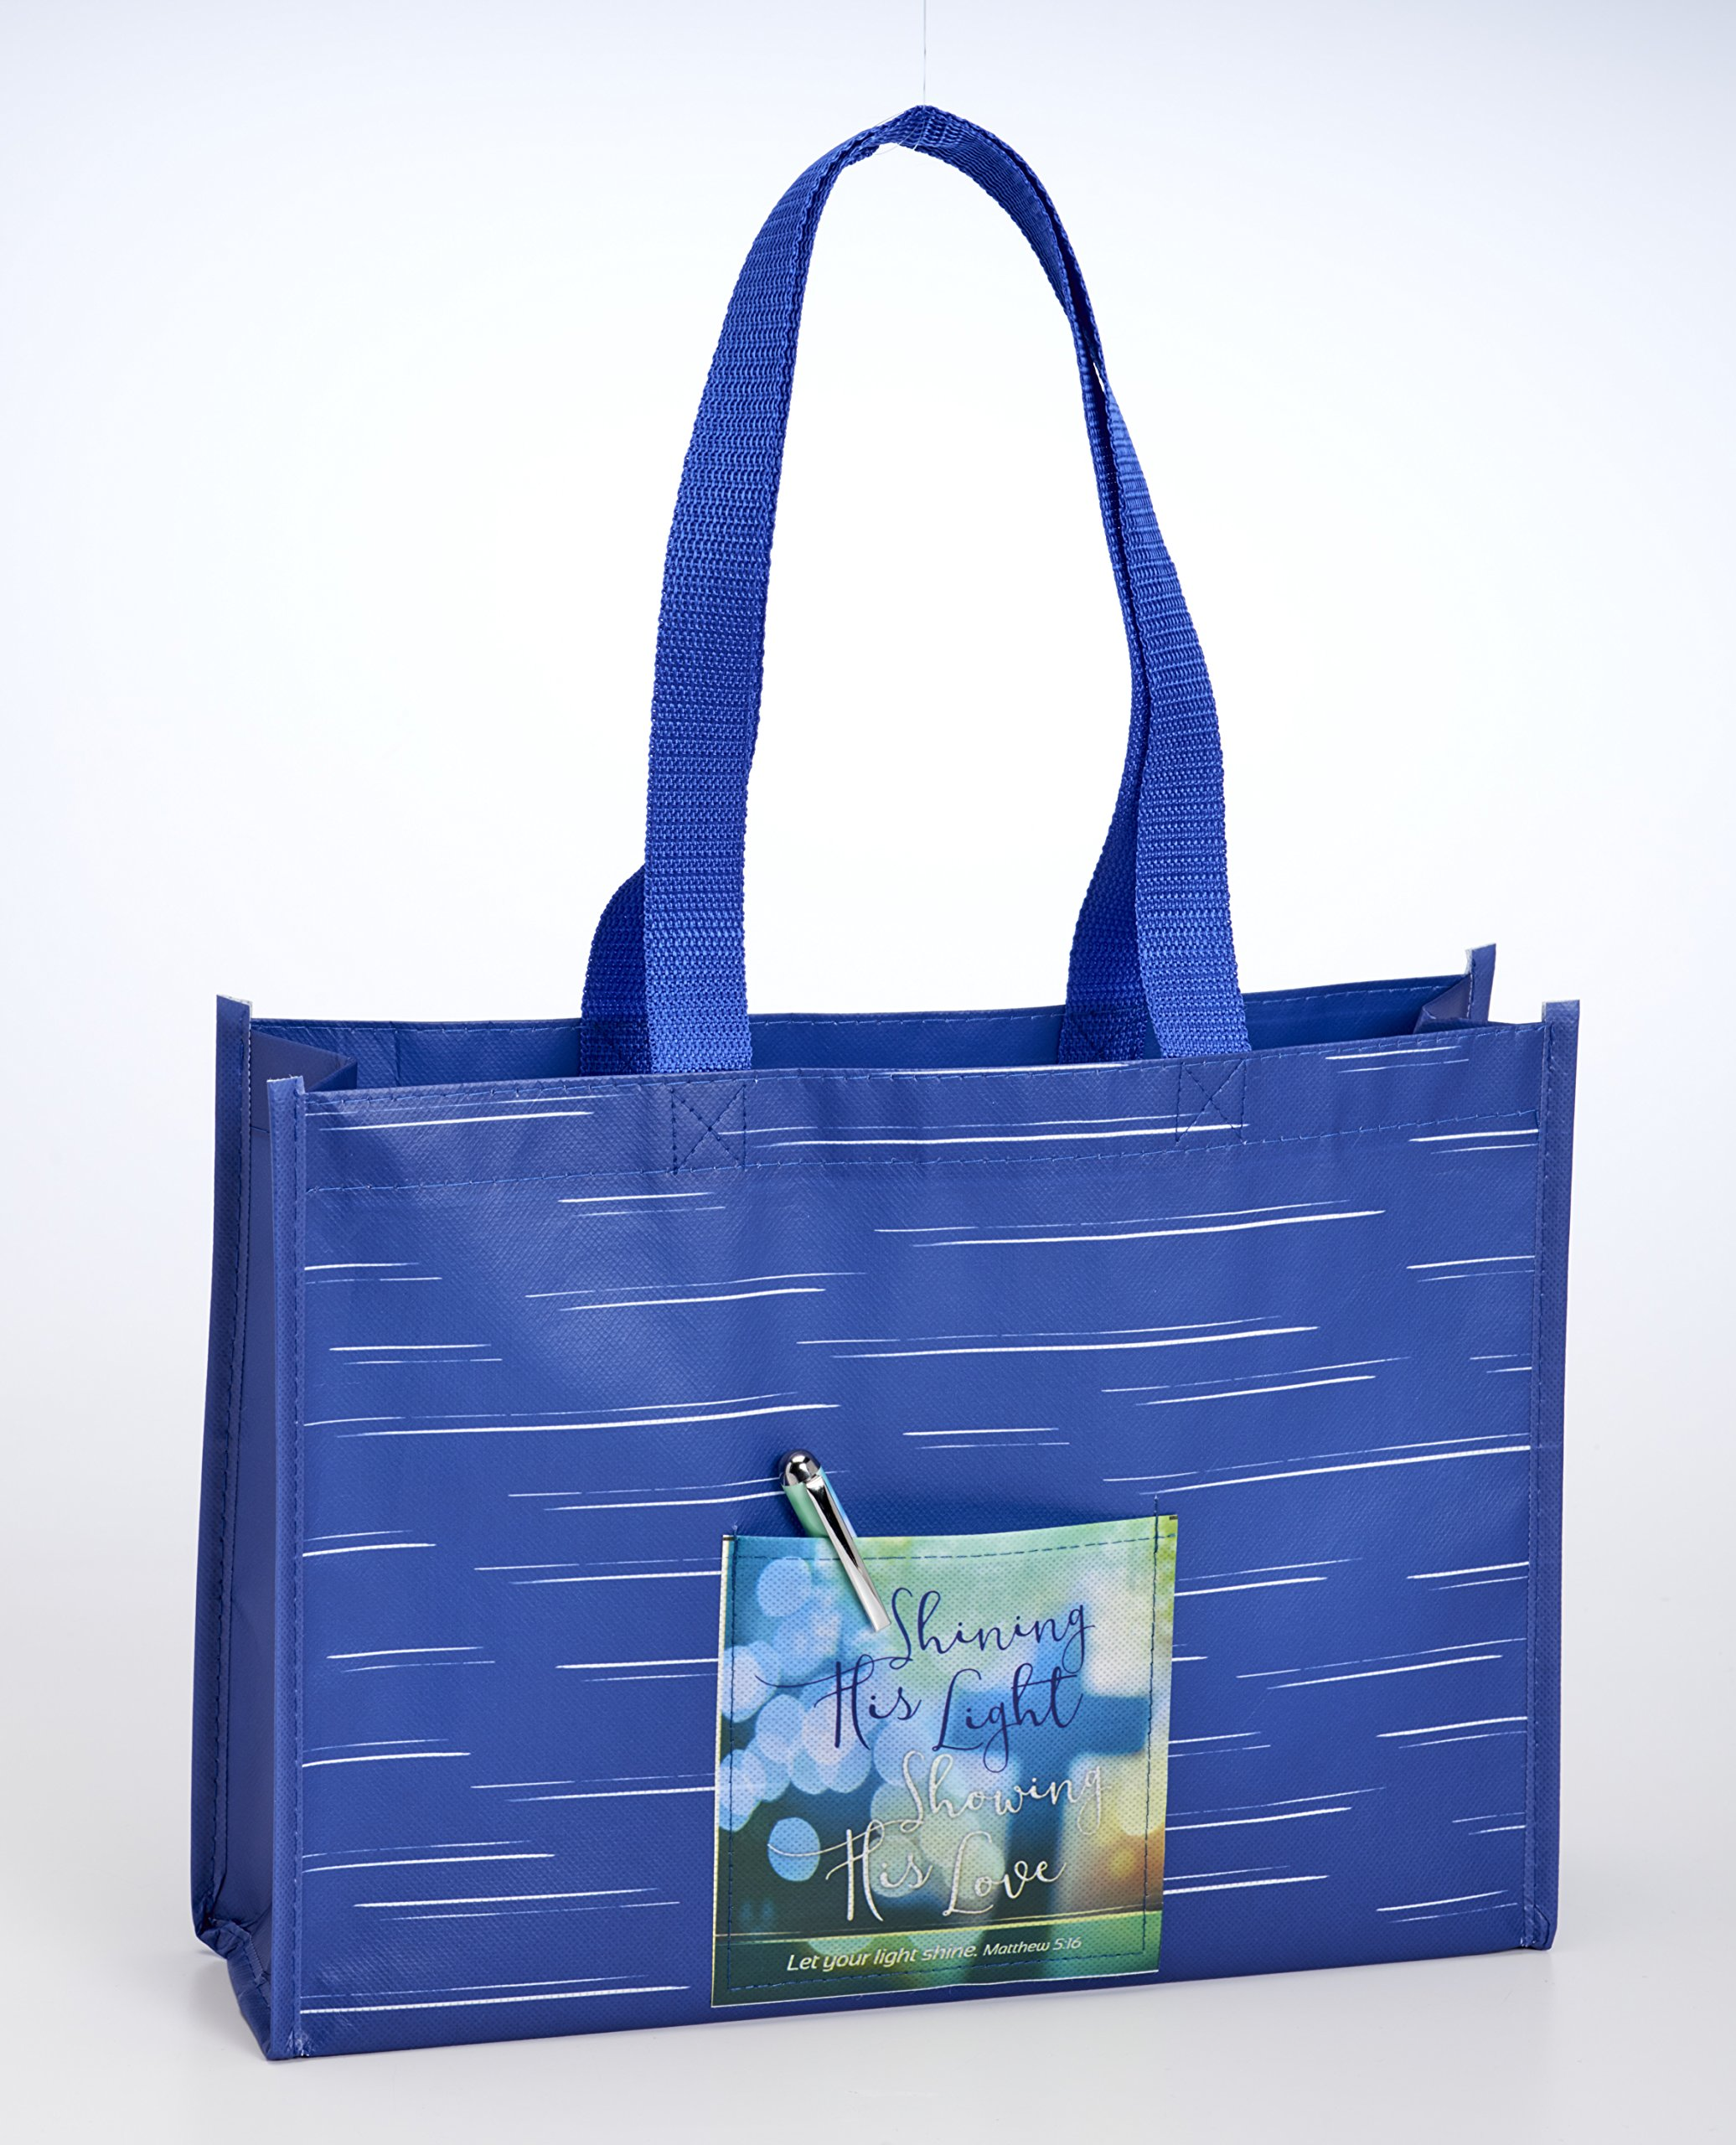 Shining His Light Love Blue 14 x 10 Inch Polyester Lined Basket Style Tote Bag